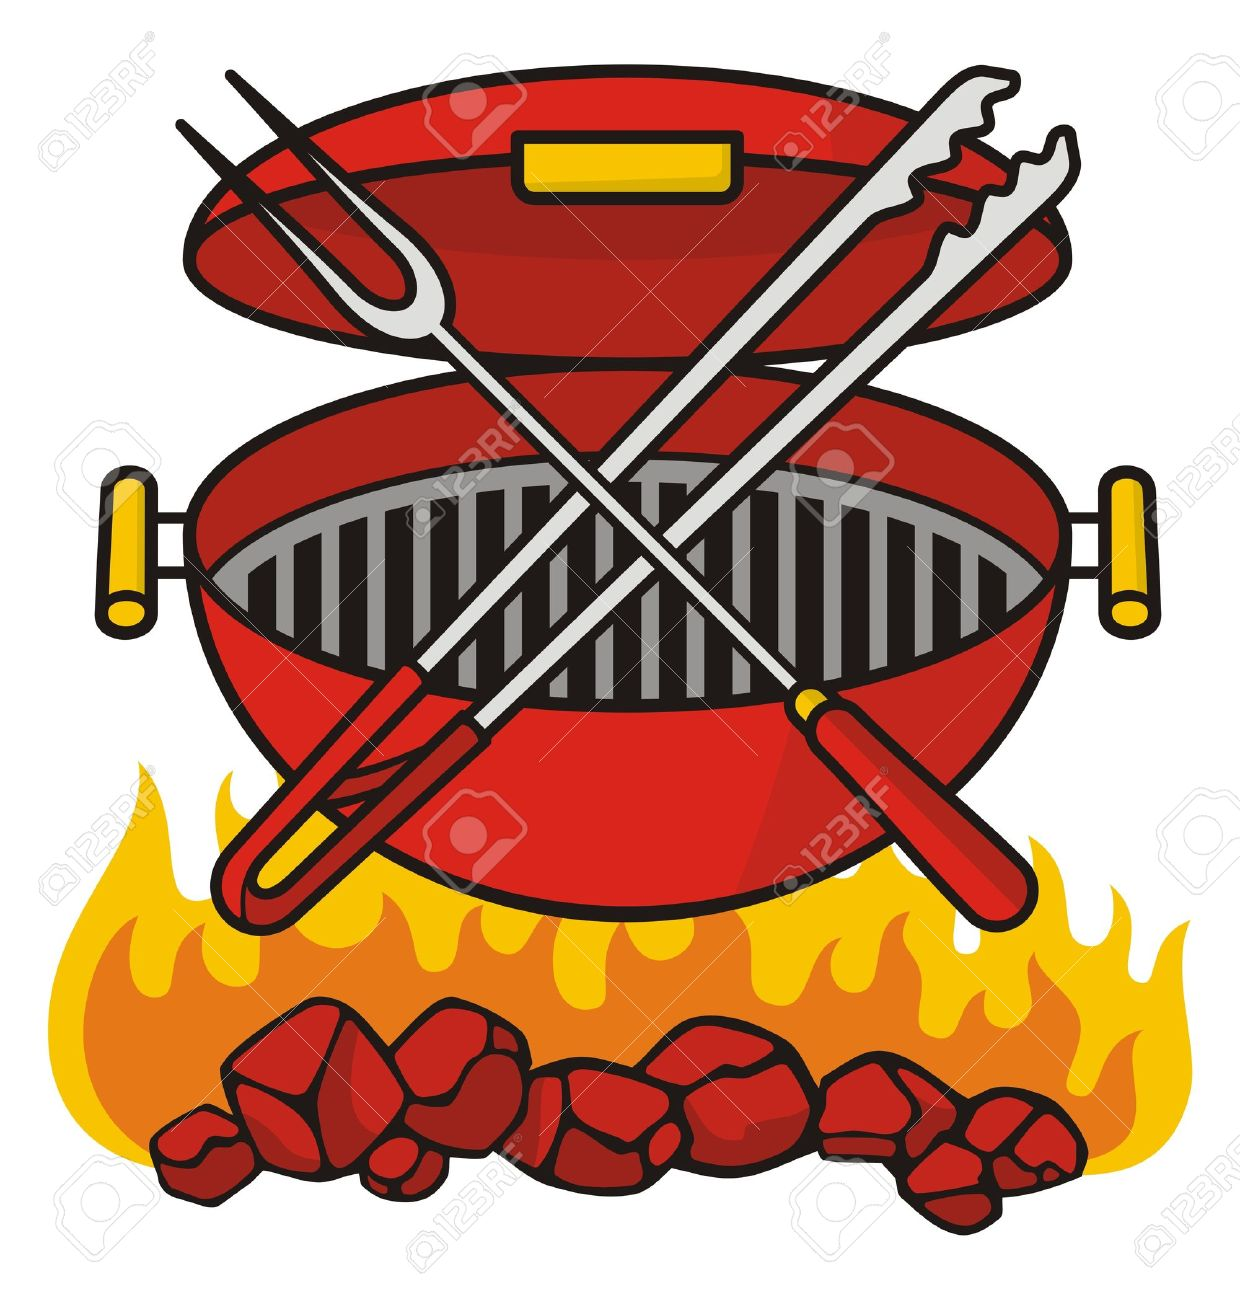 56 291 barbecue stock illustrations cliparts and royalty free rh 123rf com Summer BBQ Clip Art bbq clip art images free